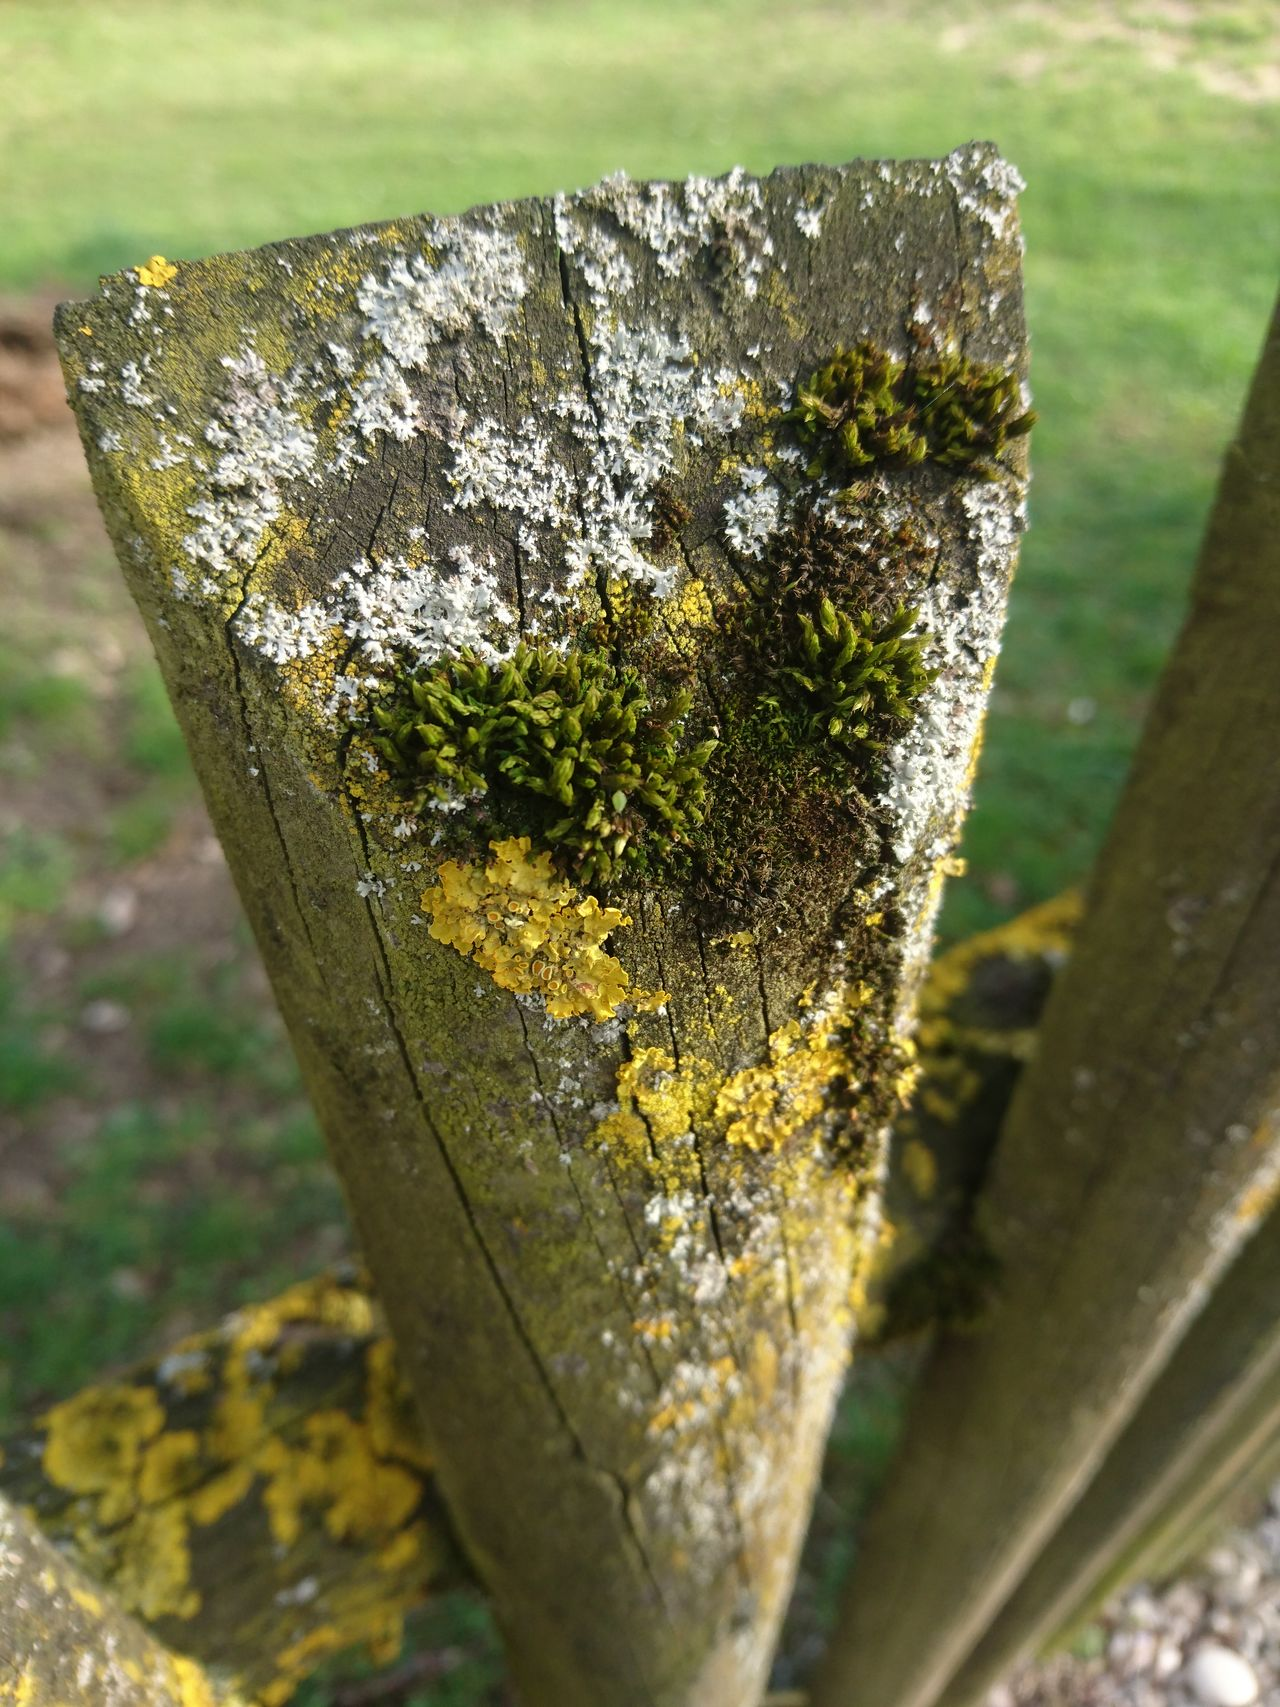 Nature No People Close-up Sunlight Focus On Foreground Outdoors Day Green Color Beauty In Nature Freshness Spring Backgrounds Wood - Material Fence Moss Moss & Lichen Moss-covered